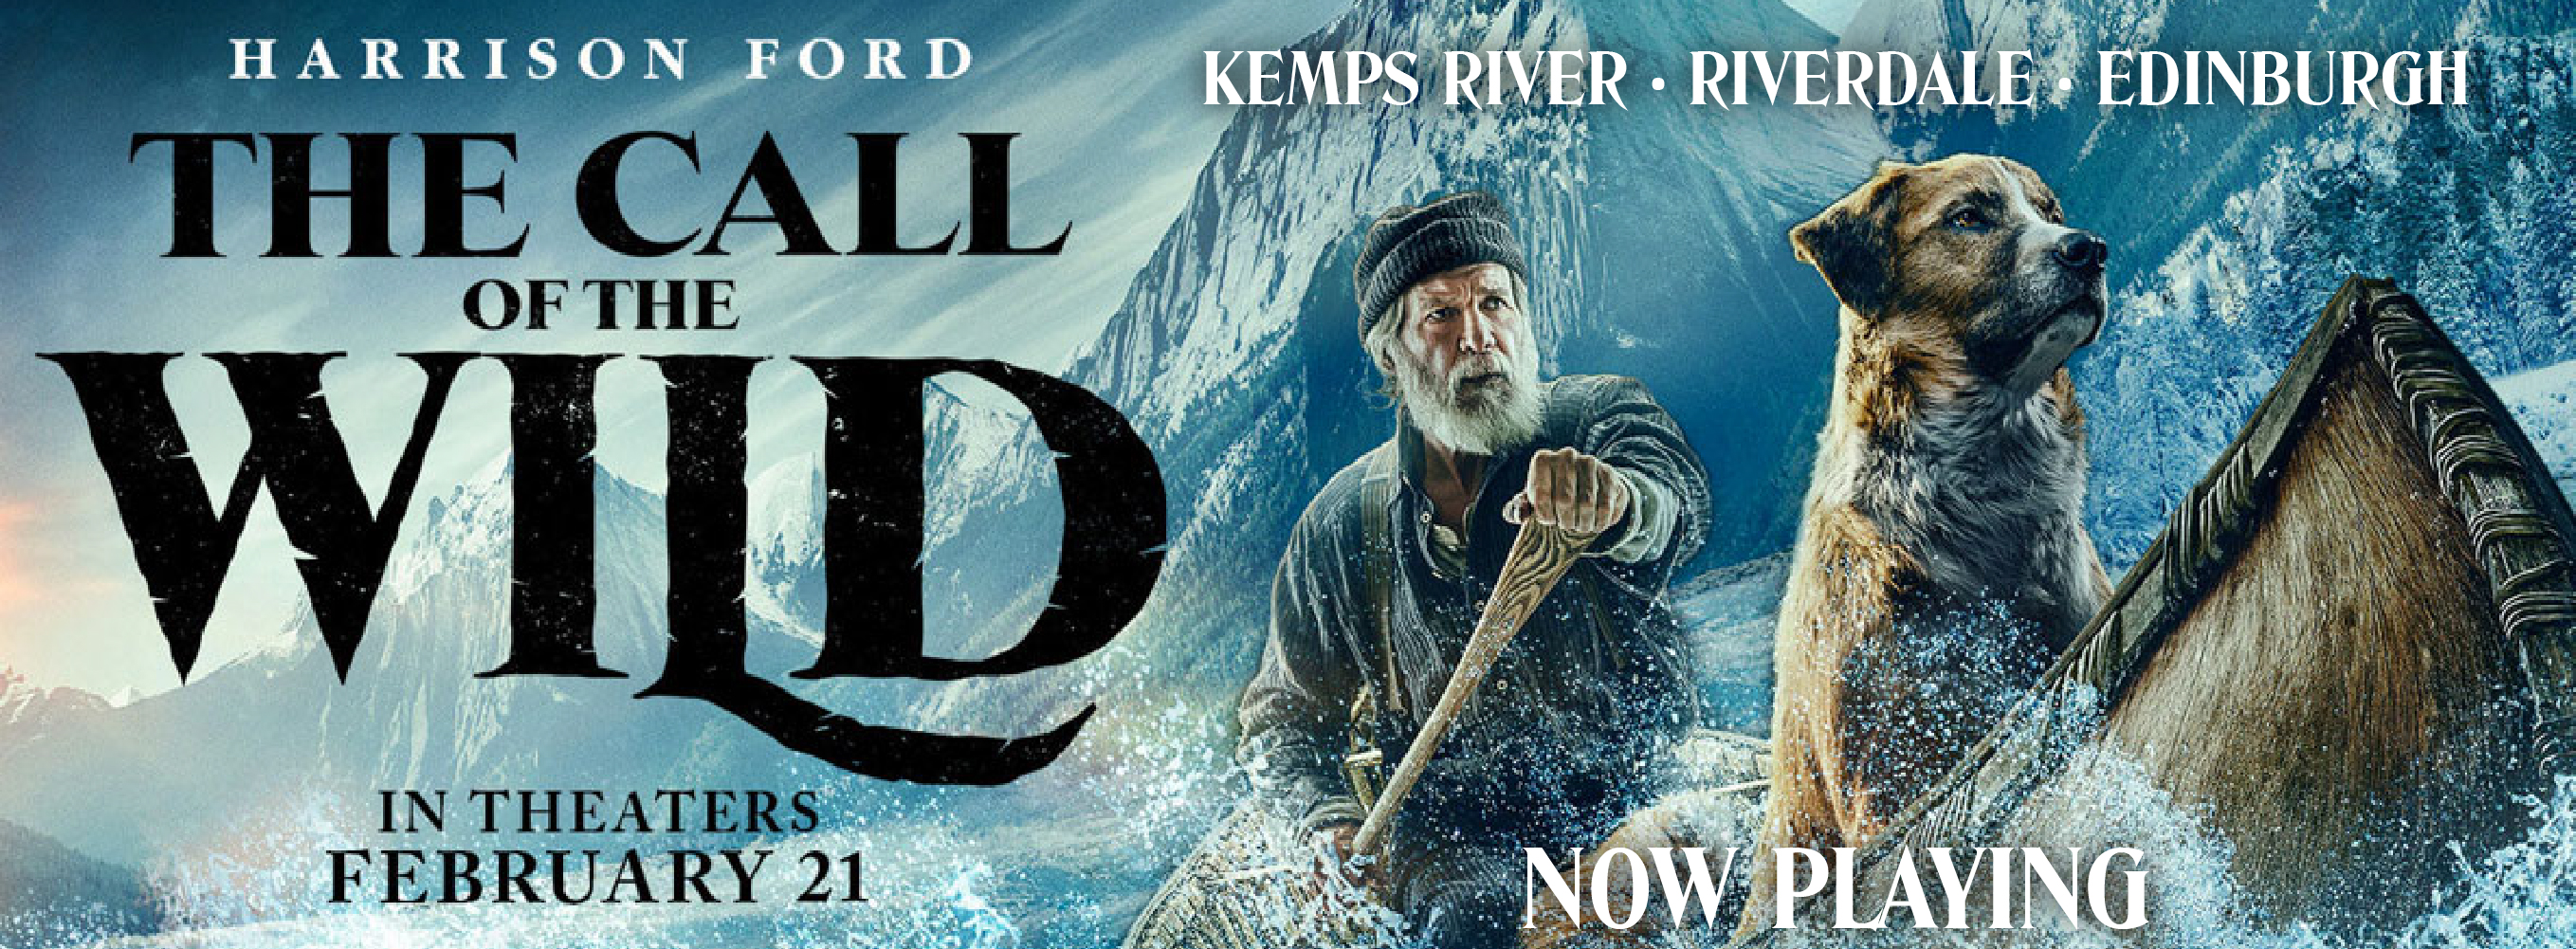 Call of the Wild Now Playing at Kemps River, Riverdale, and Edinburgh